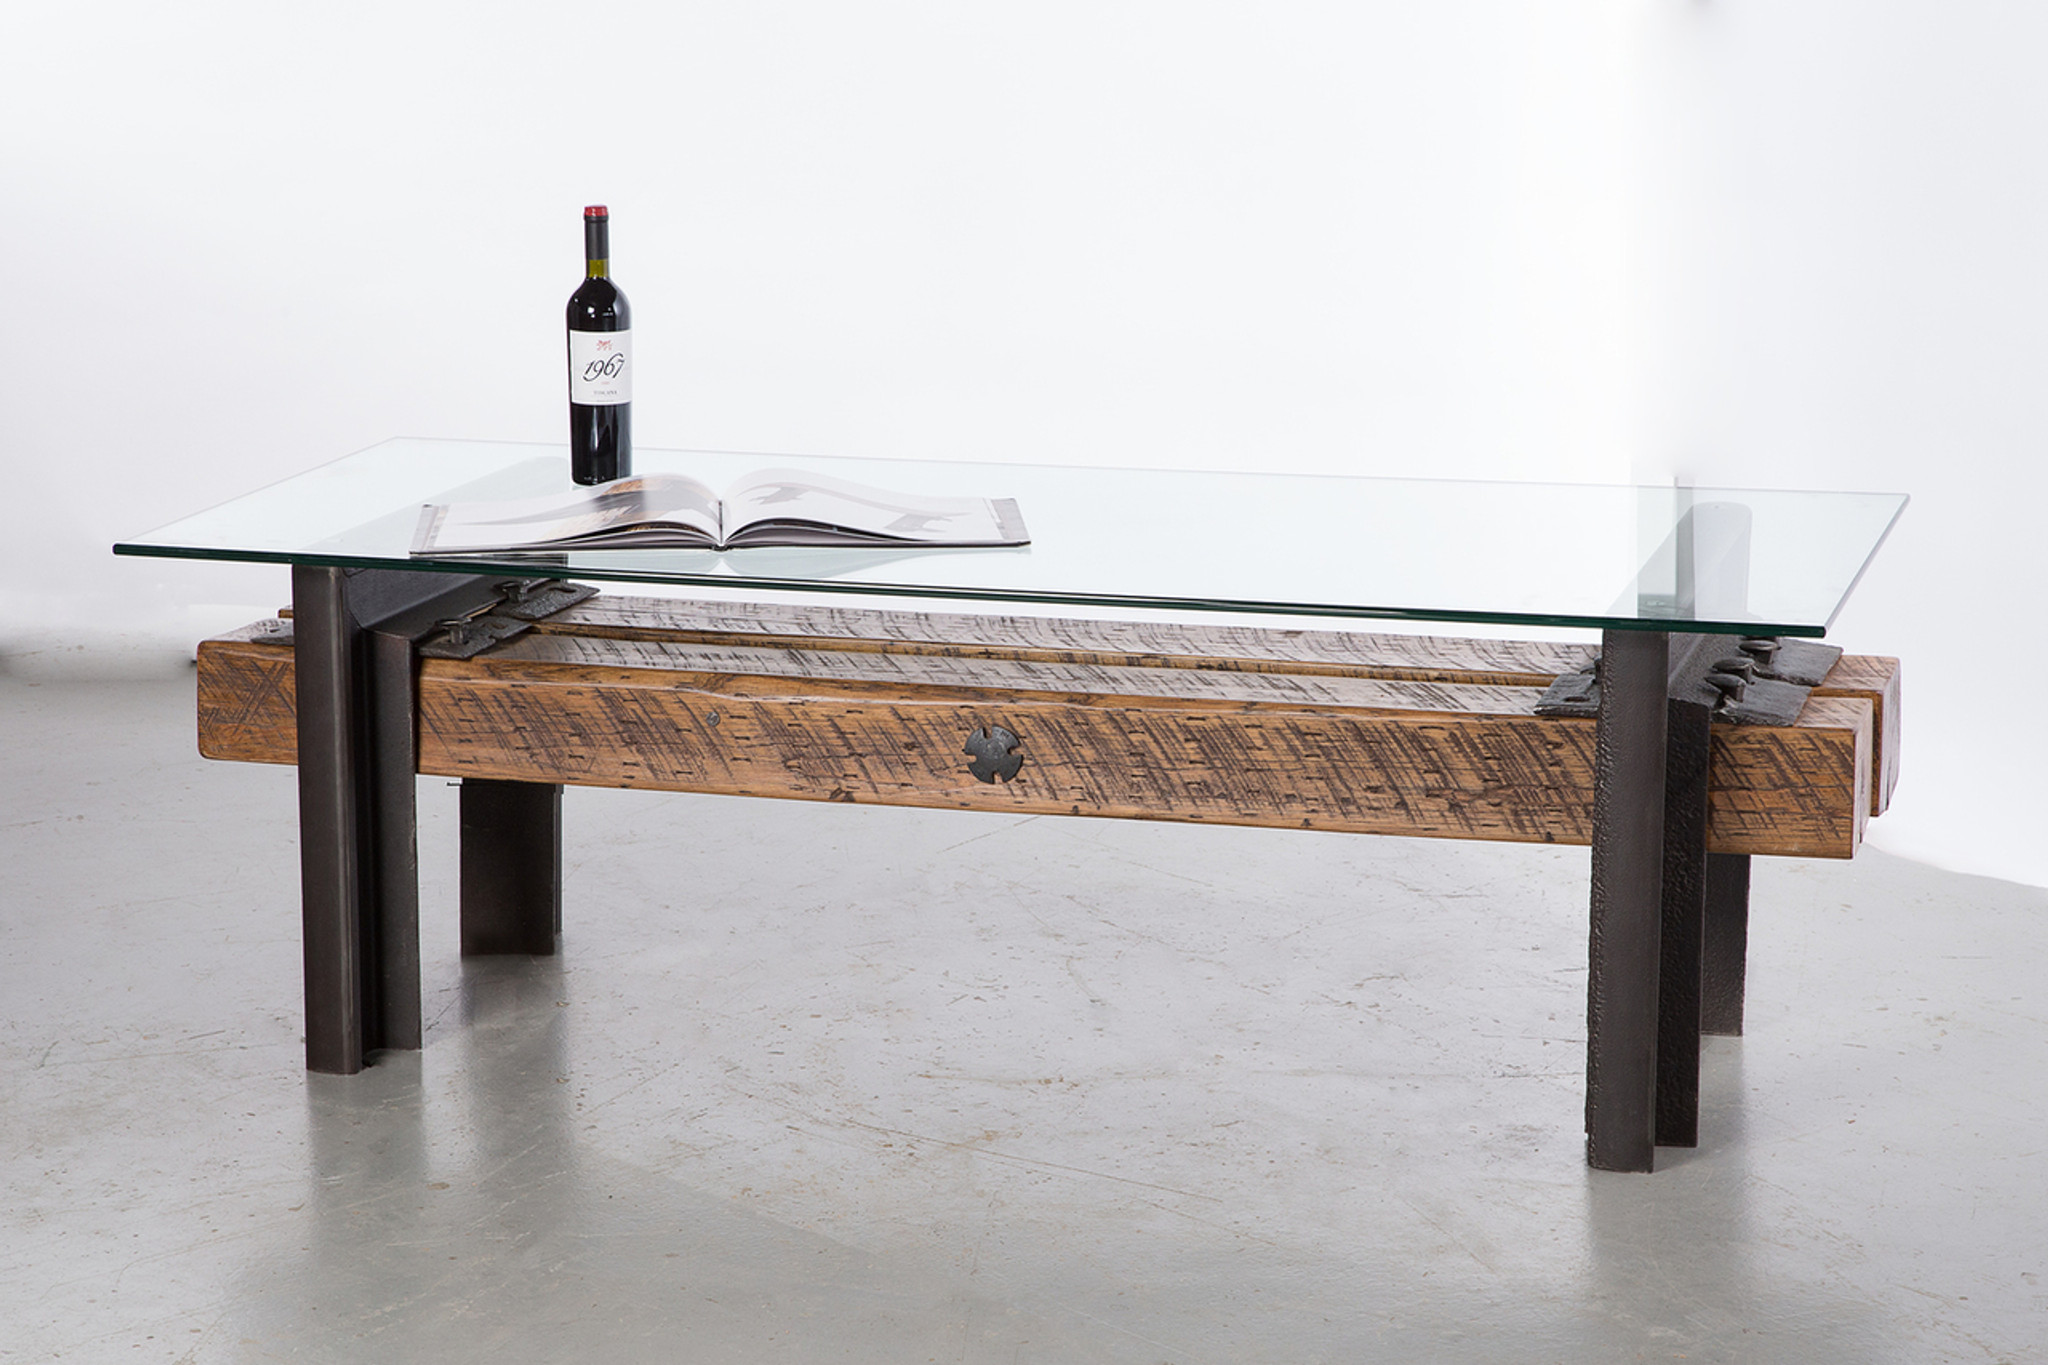 oversized coffee table timber reclaimed salvaged steel accents